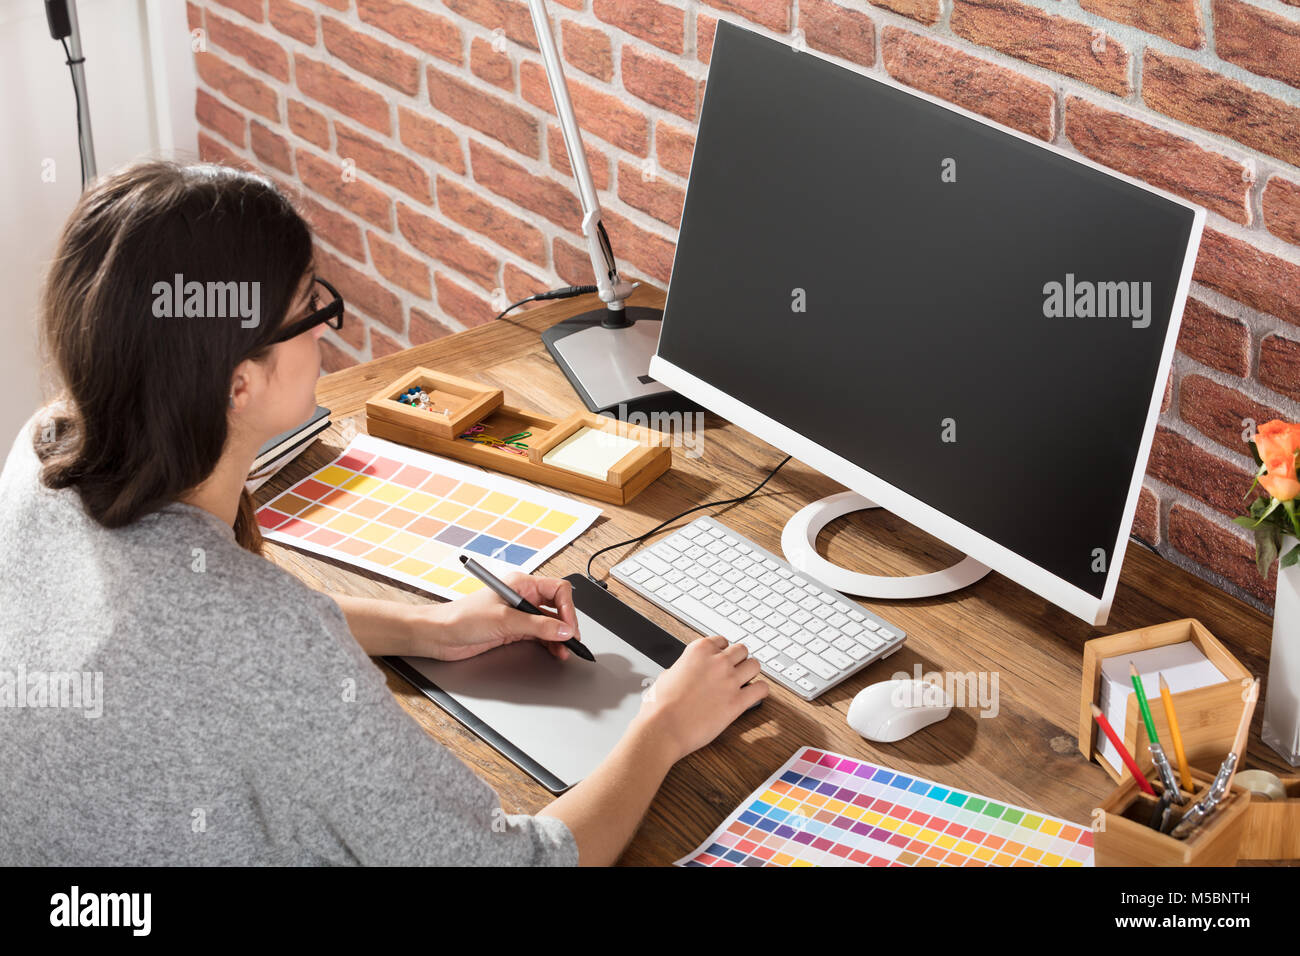 Young Female Graphic Designer Using Graphic Tablet With Color Samples On Desk Stock Photo